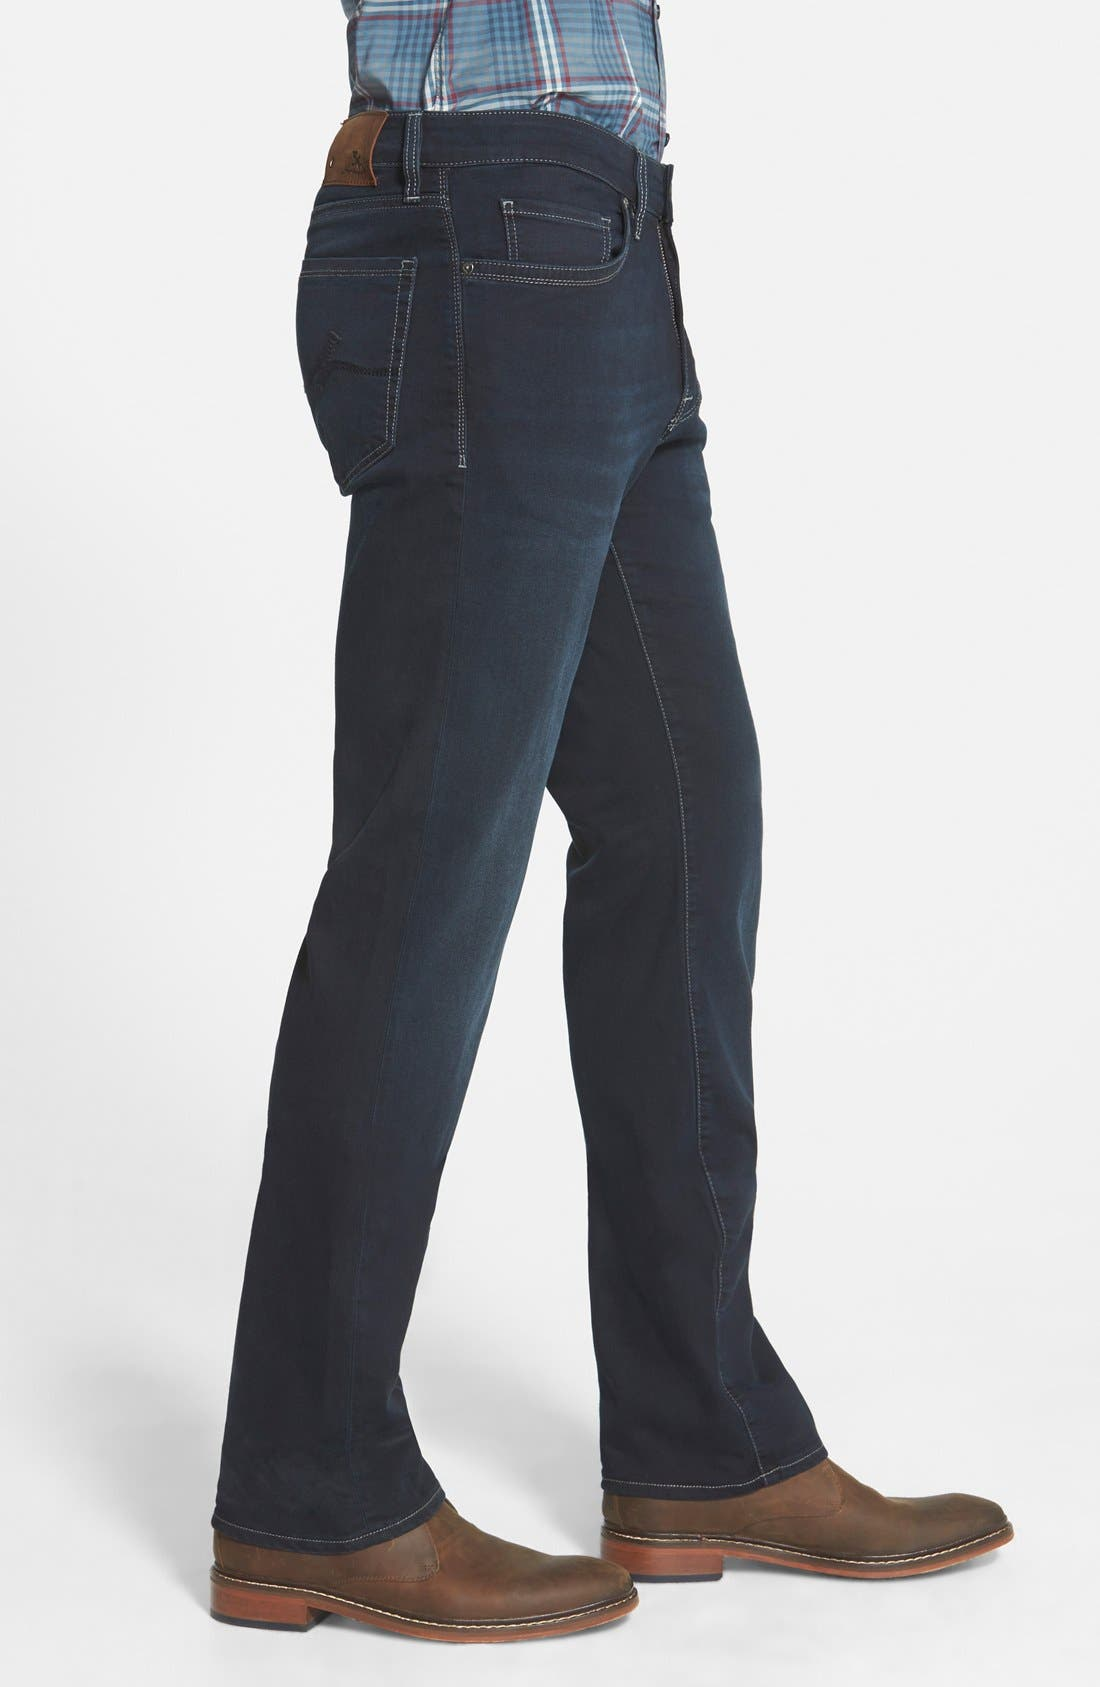 'Charisma' Classic Relaxed Fit Jeans,                             Alternate thumbnail 3, color,                             MIDNIGHT AUSTIN